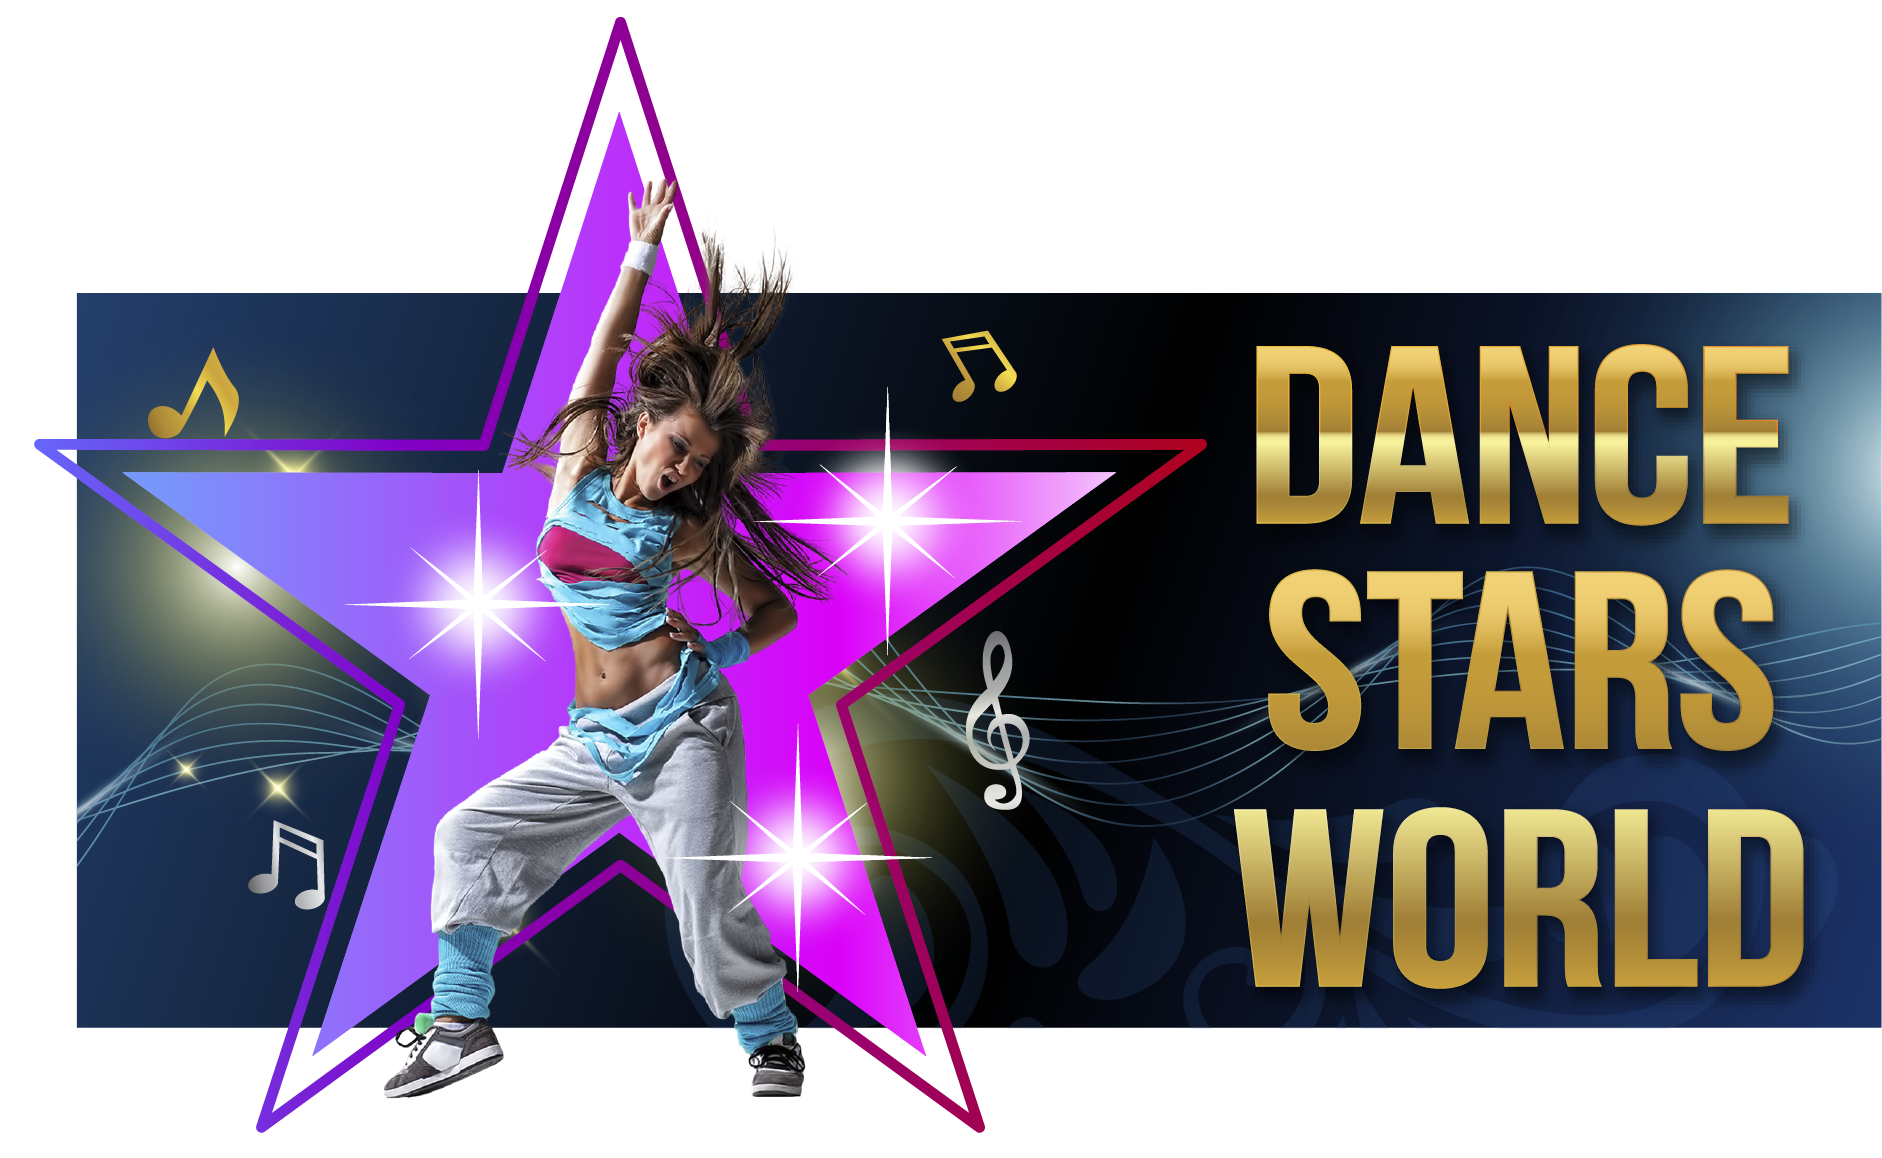 DANCE STARS WORLD!